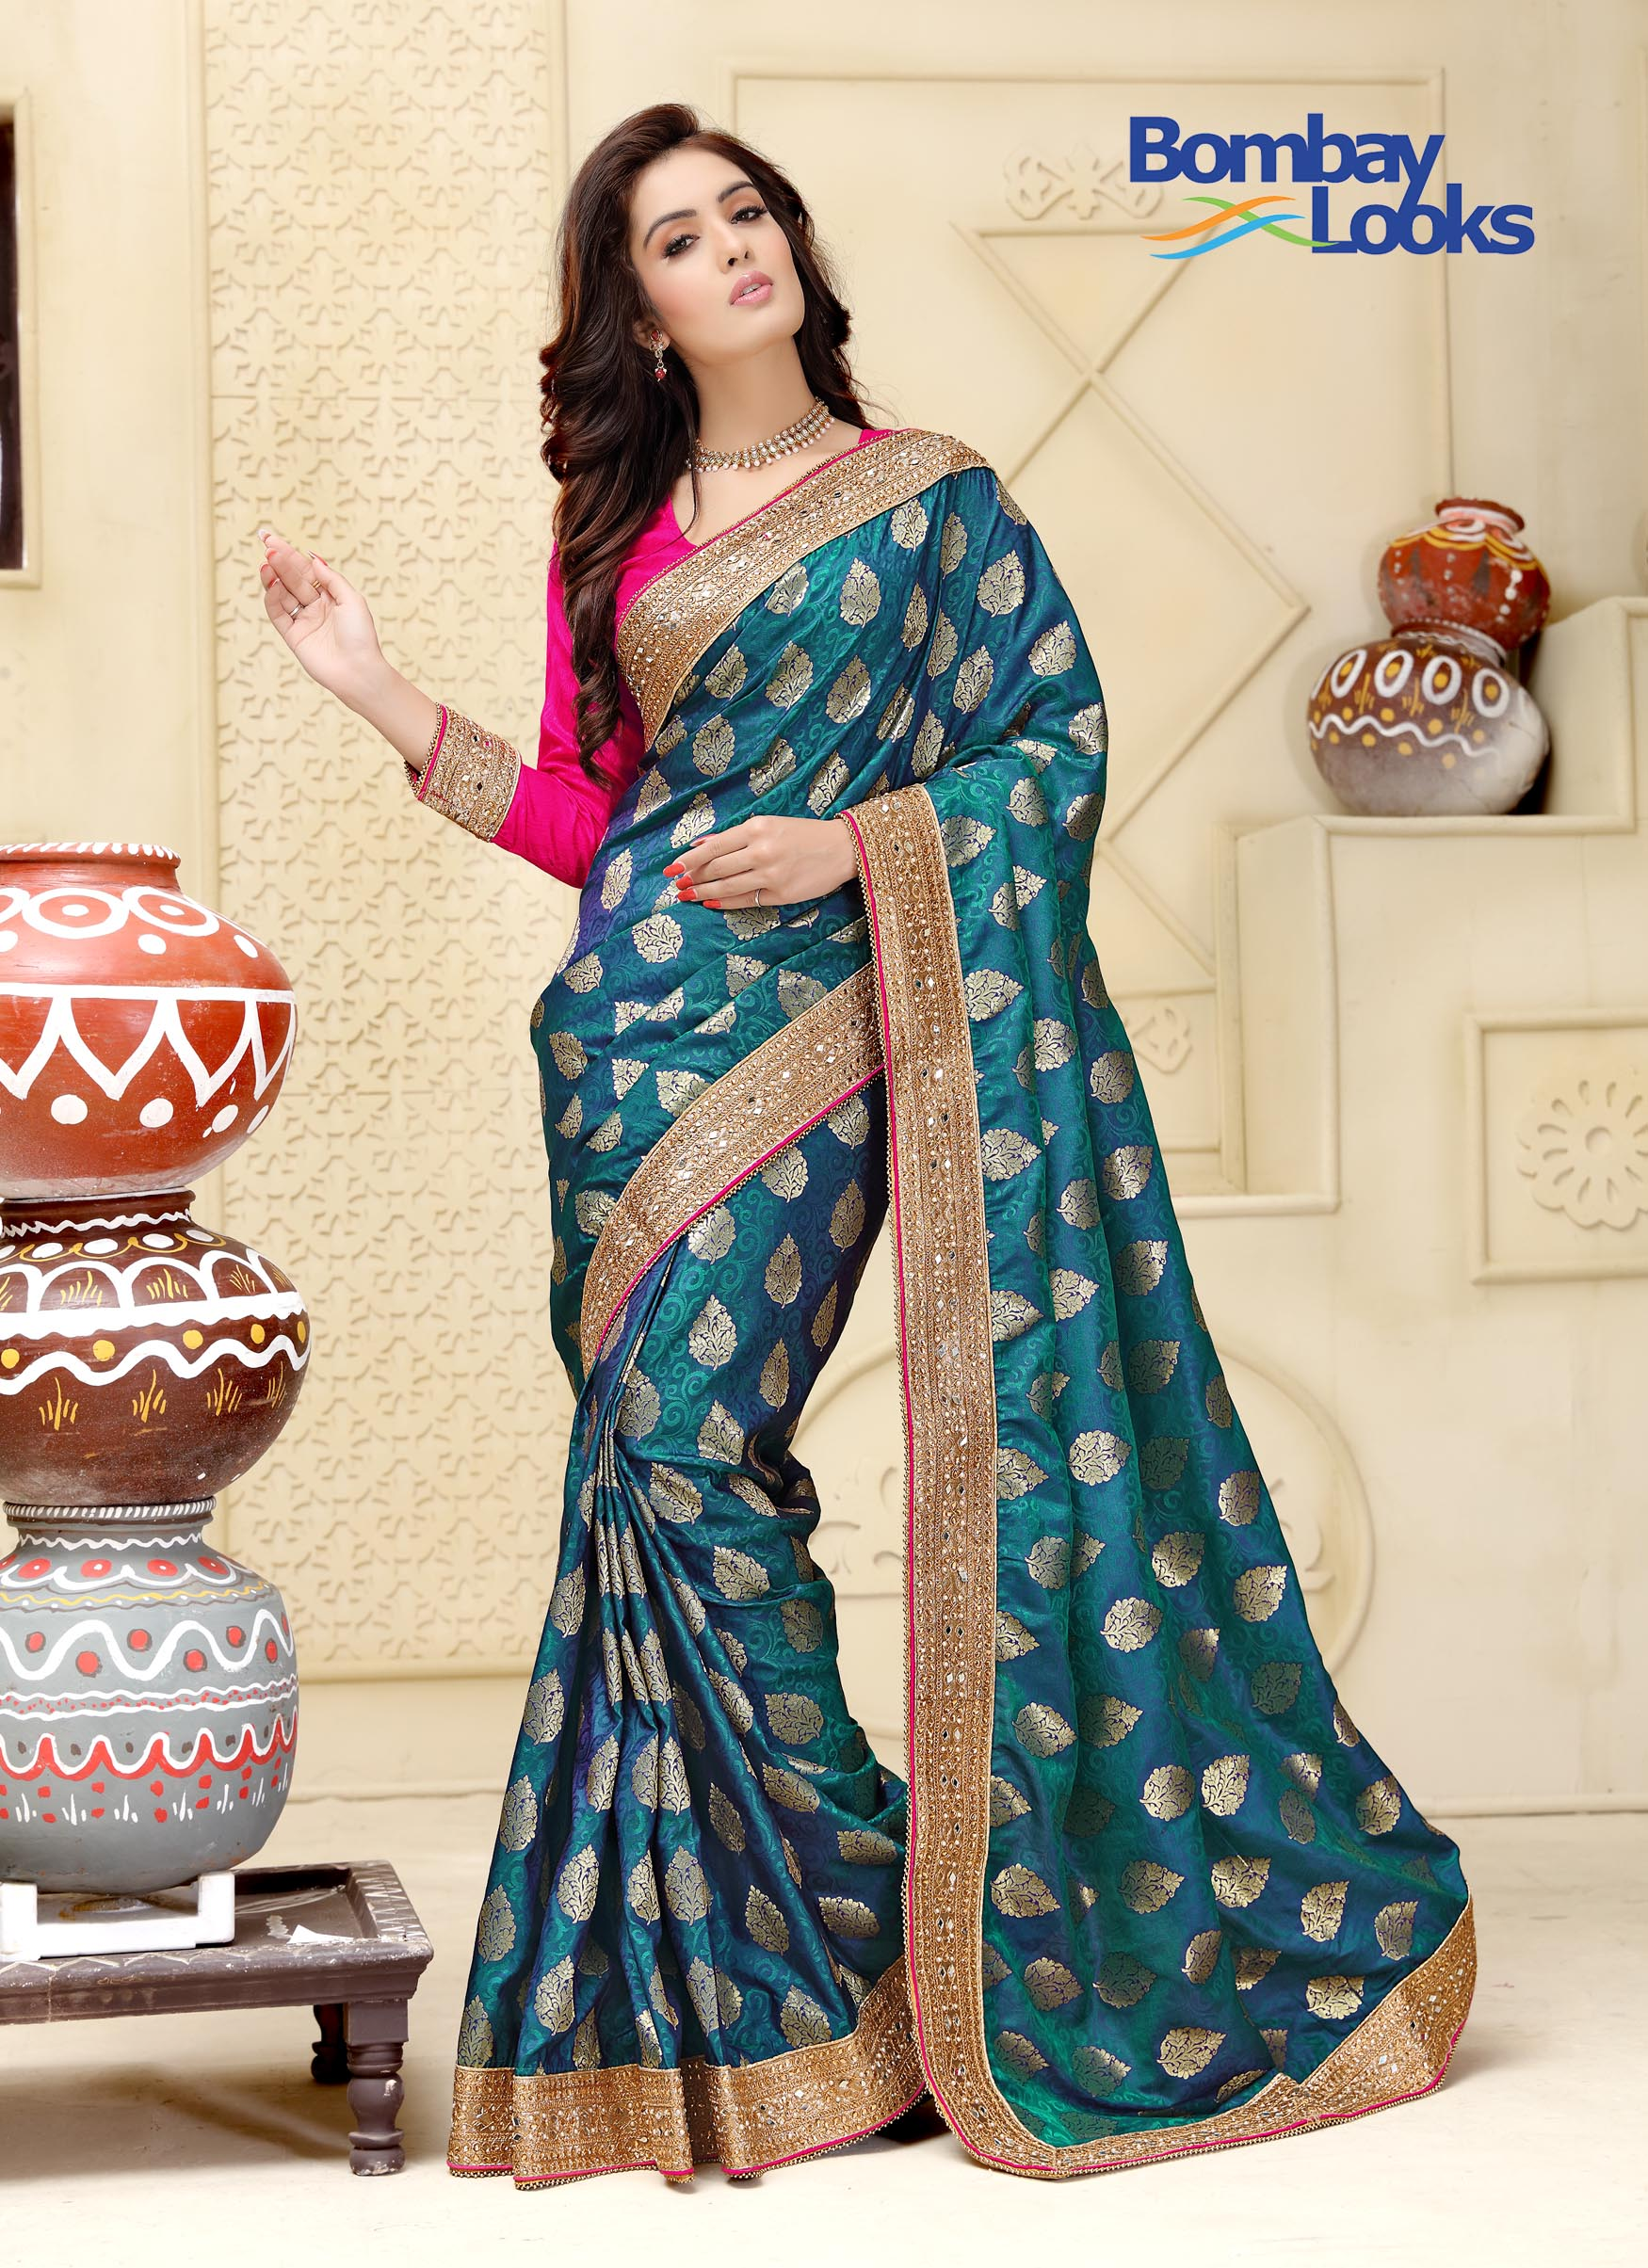 Classy two toned silk saree in pink and blue with heavy embroidery